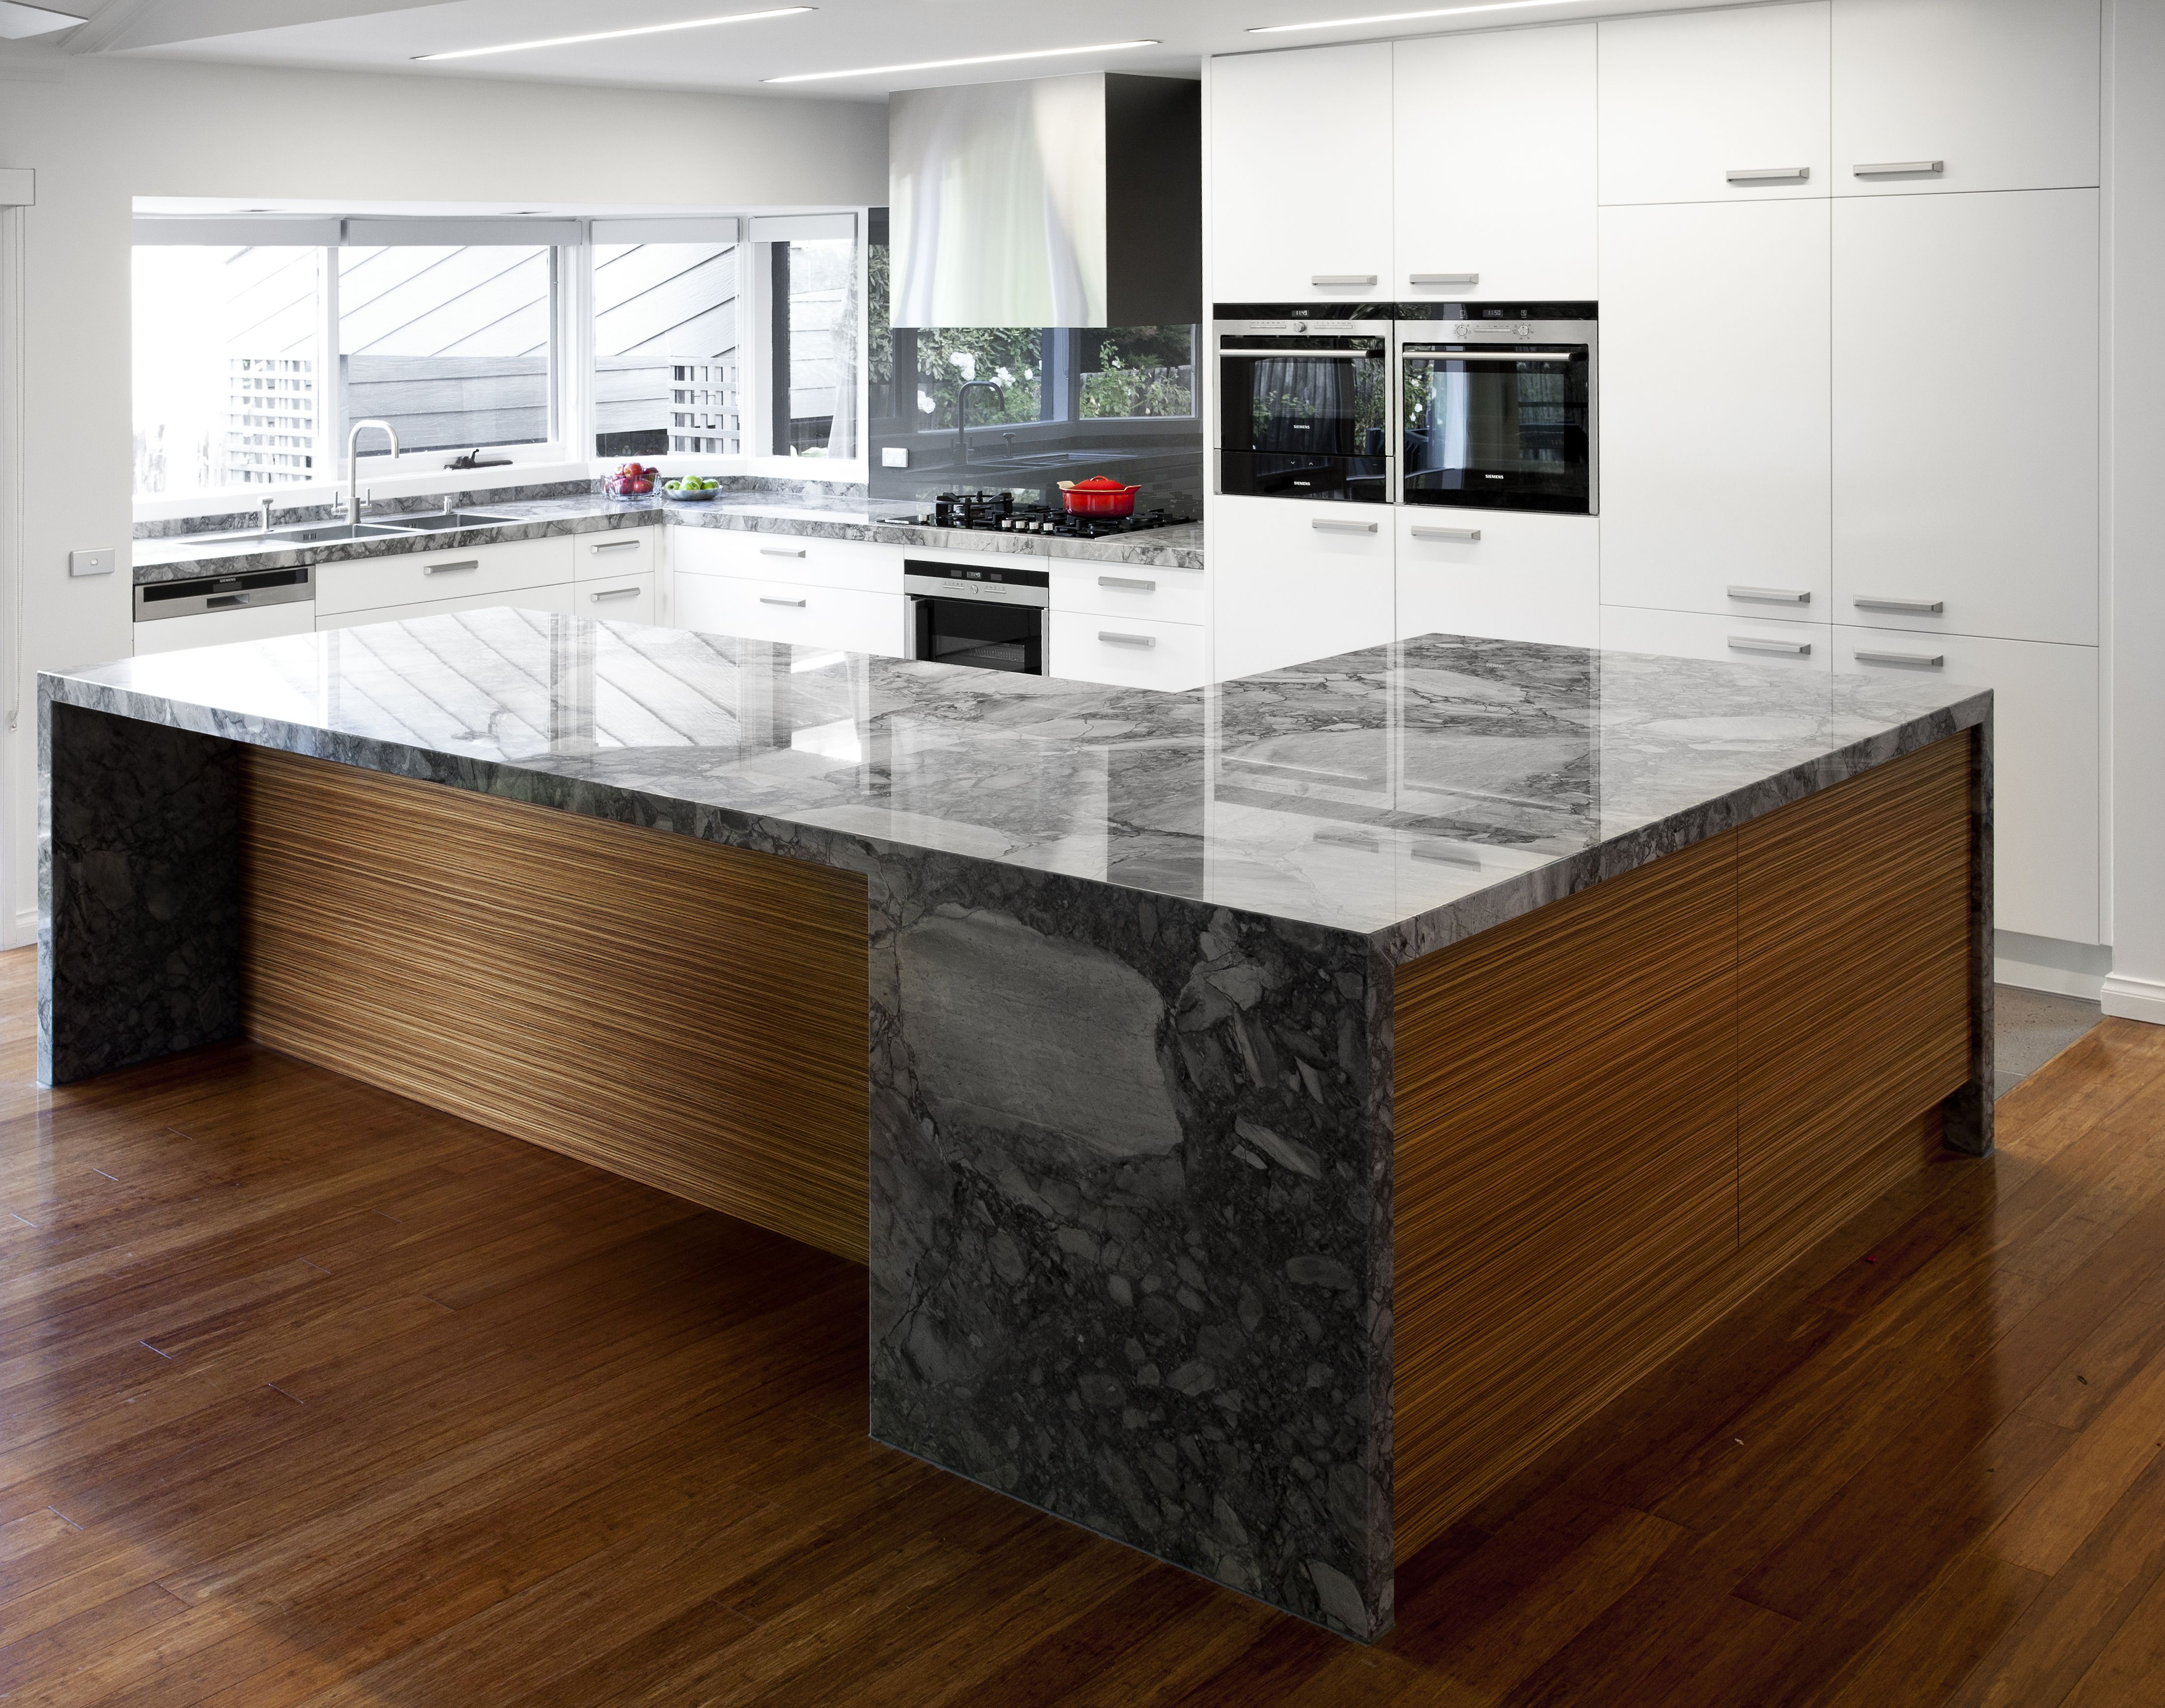 Granite Benchtops Brisbane Entrant Mint Kitchens By Designwize Month May